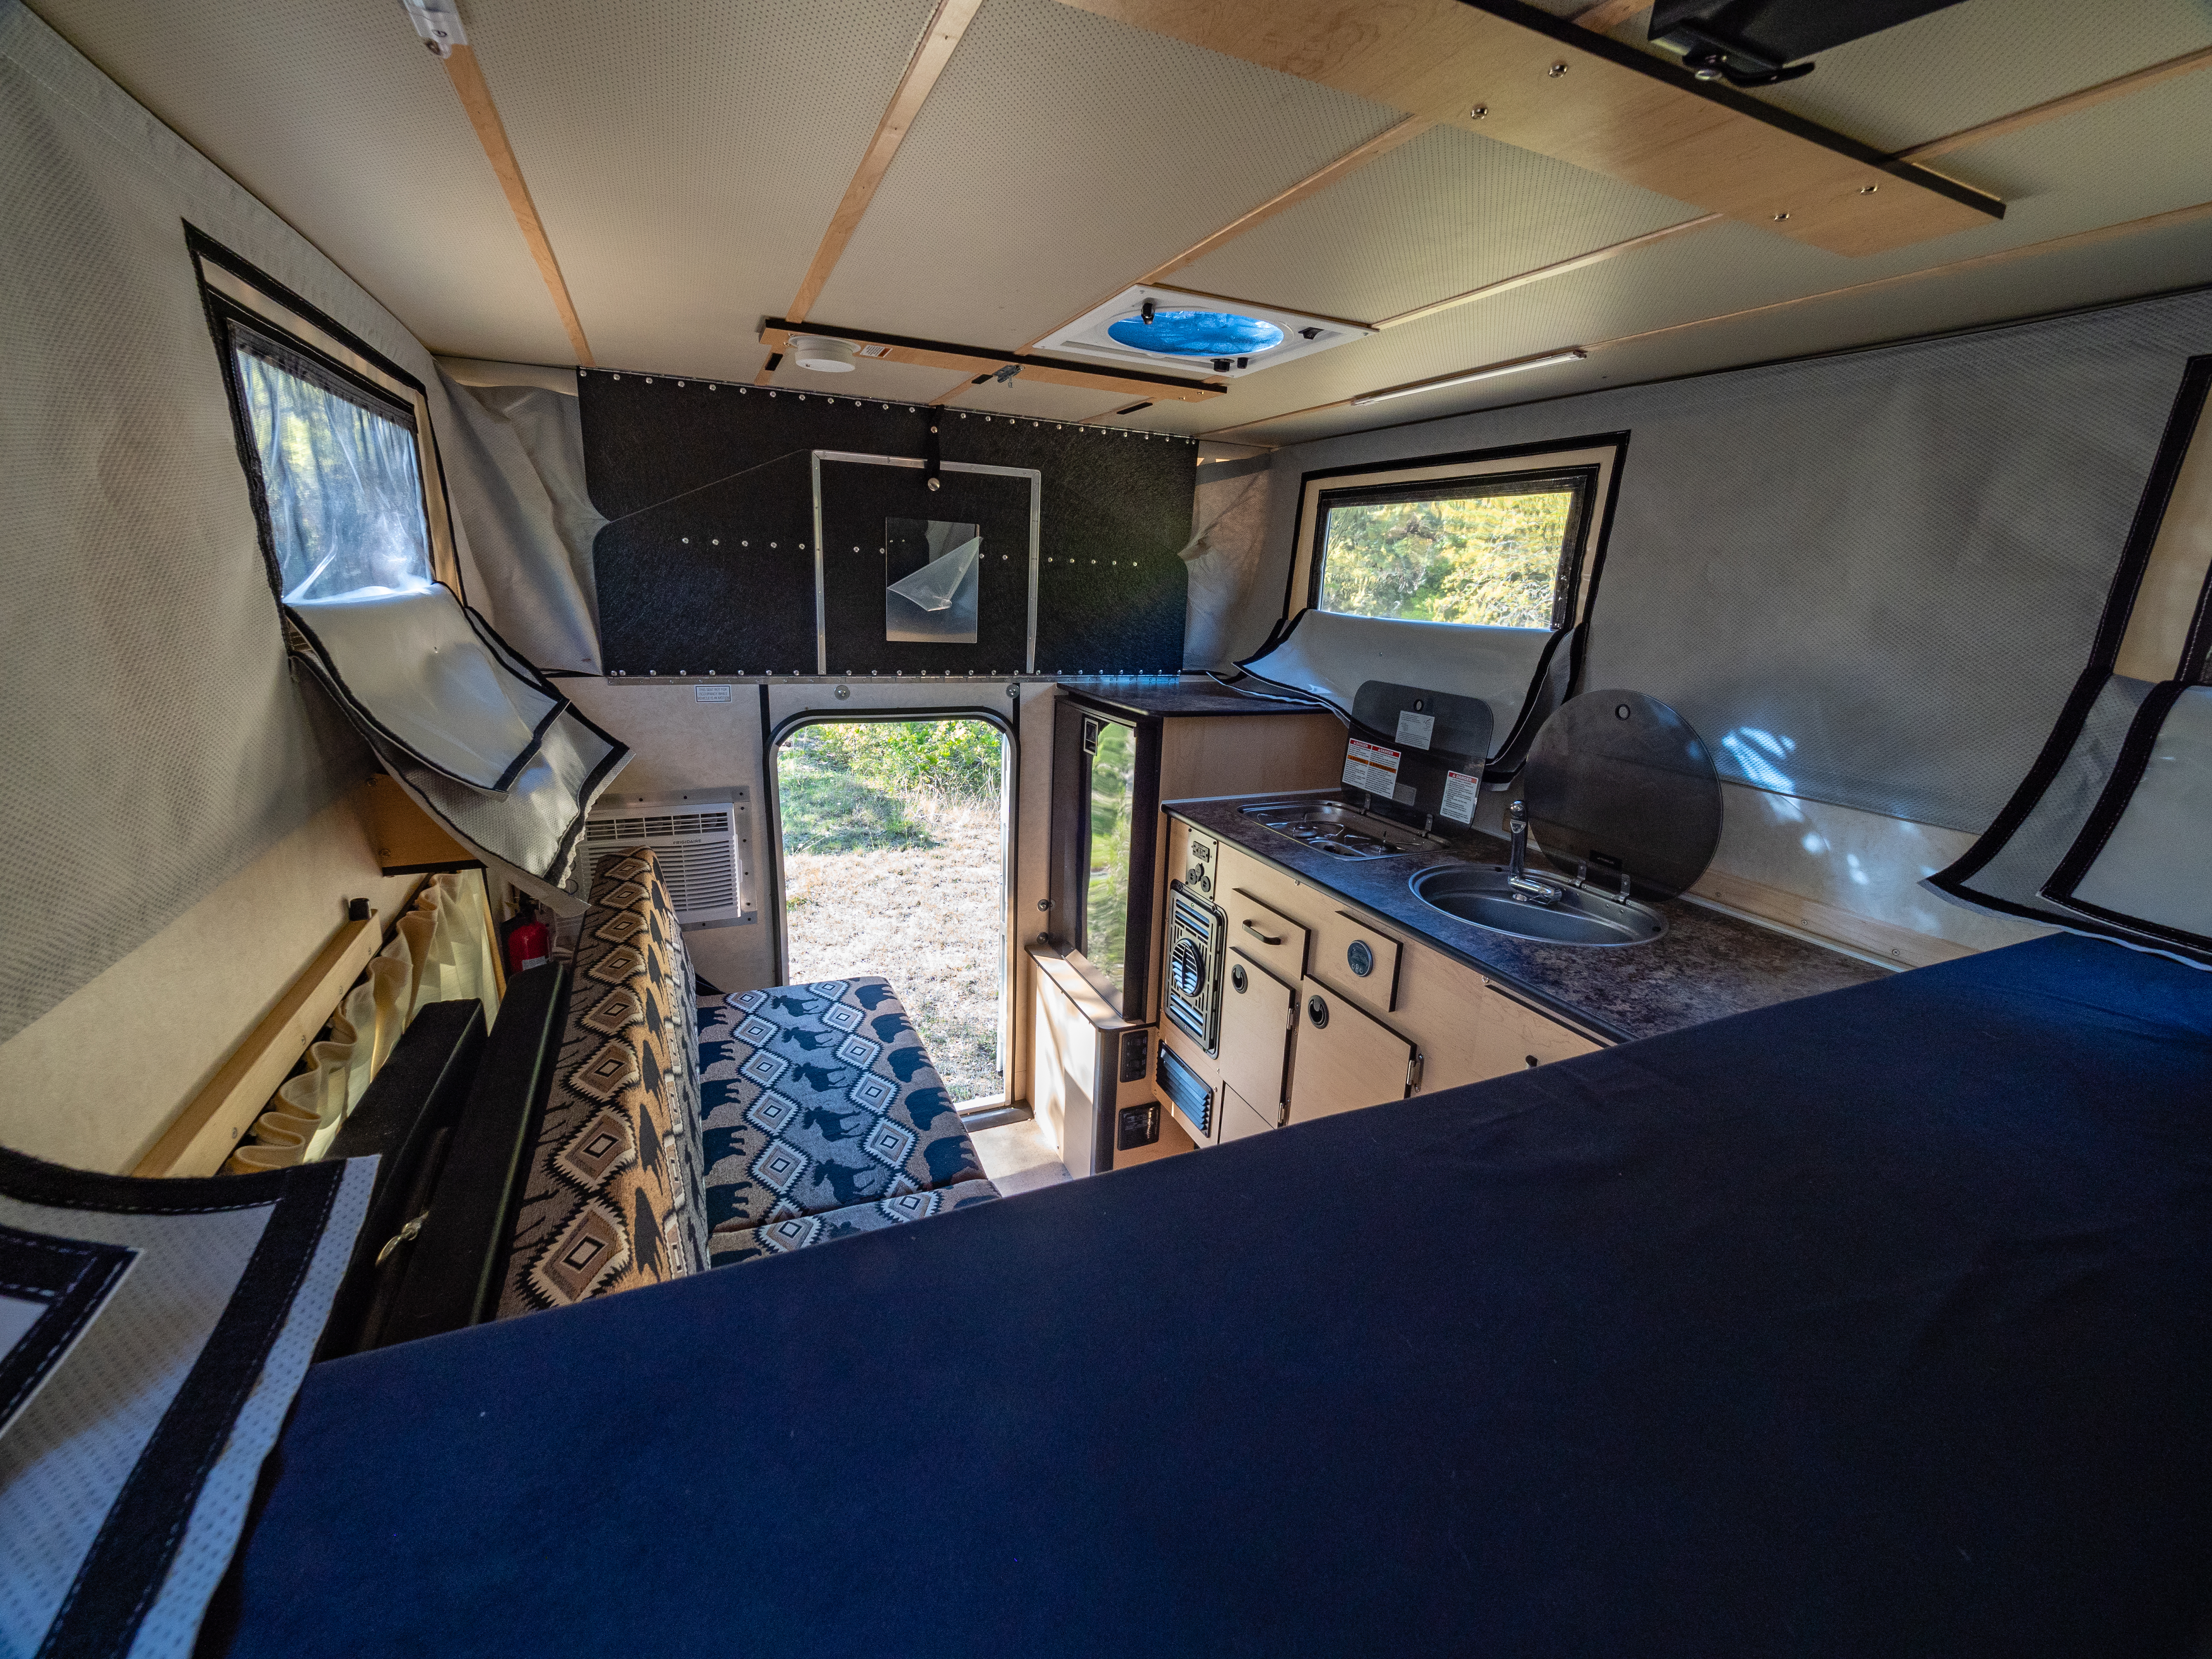 Four Wheel' Pop-Up Camper Review: RV Comfort, 4WD Access